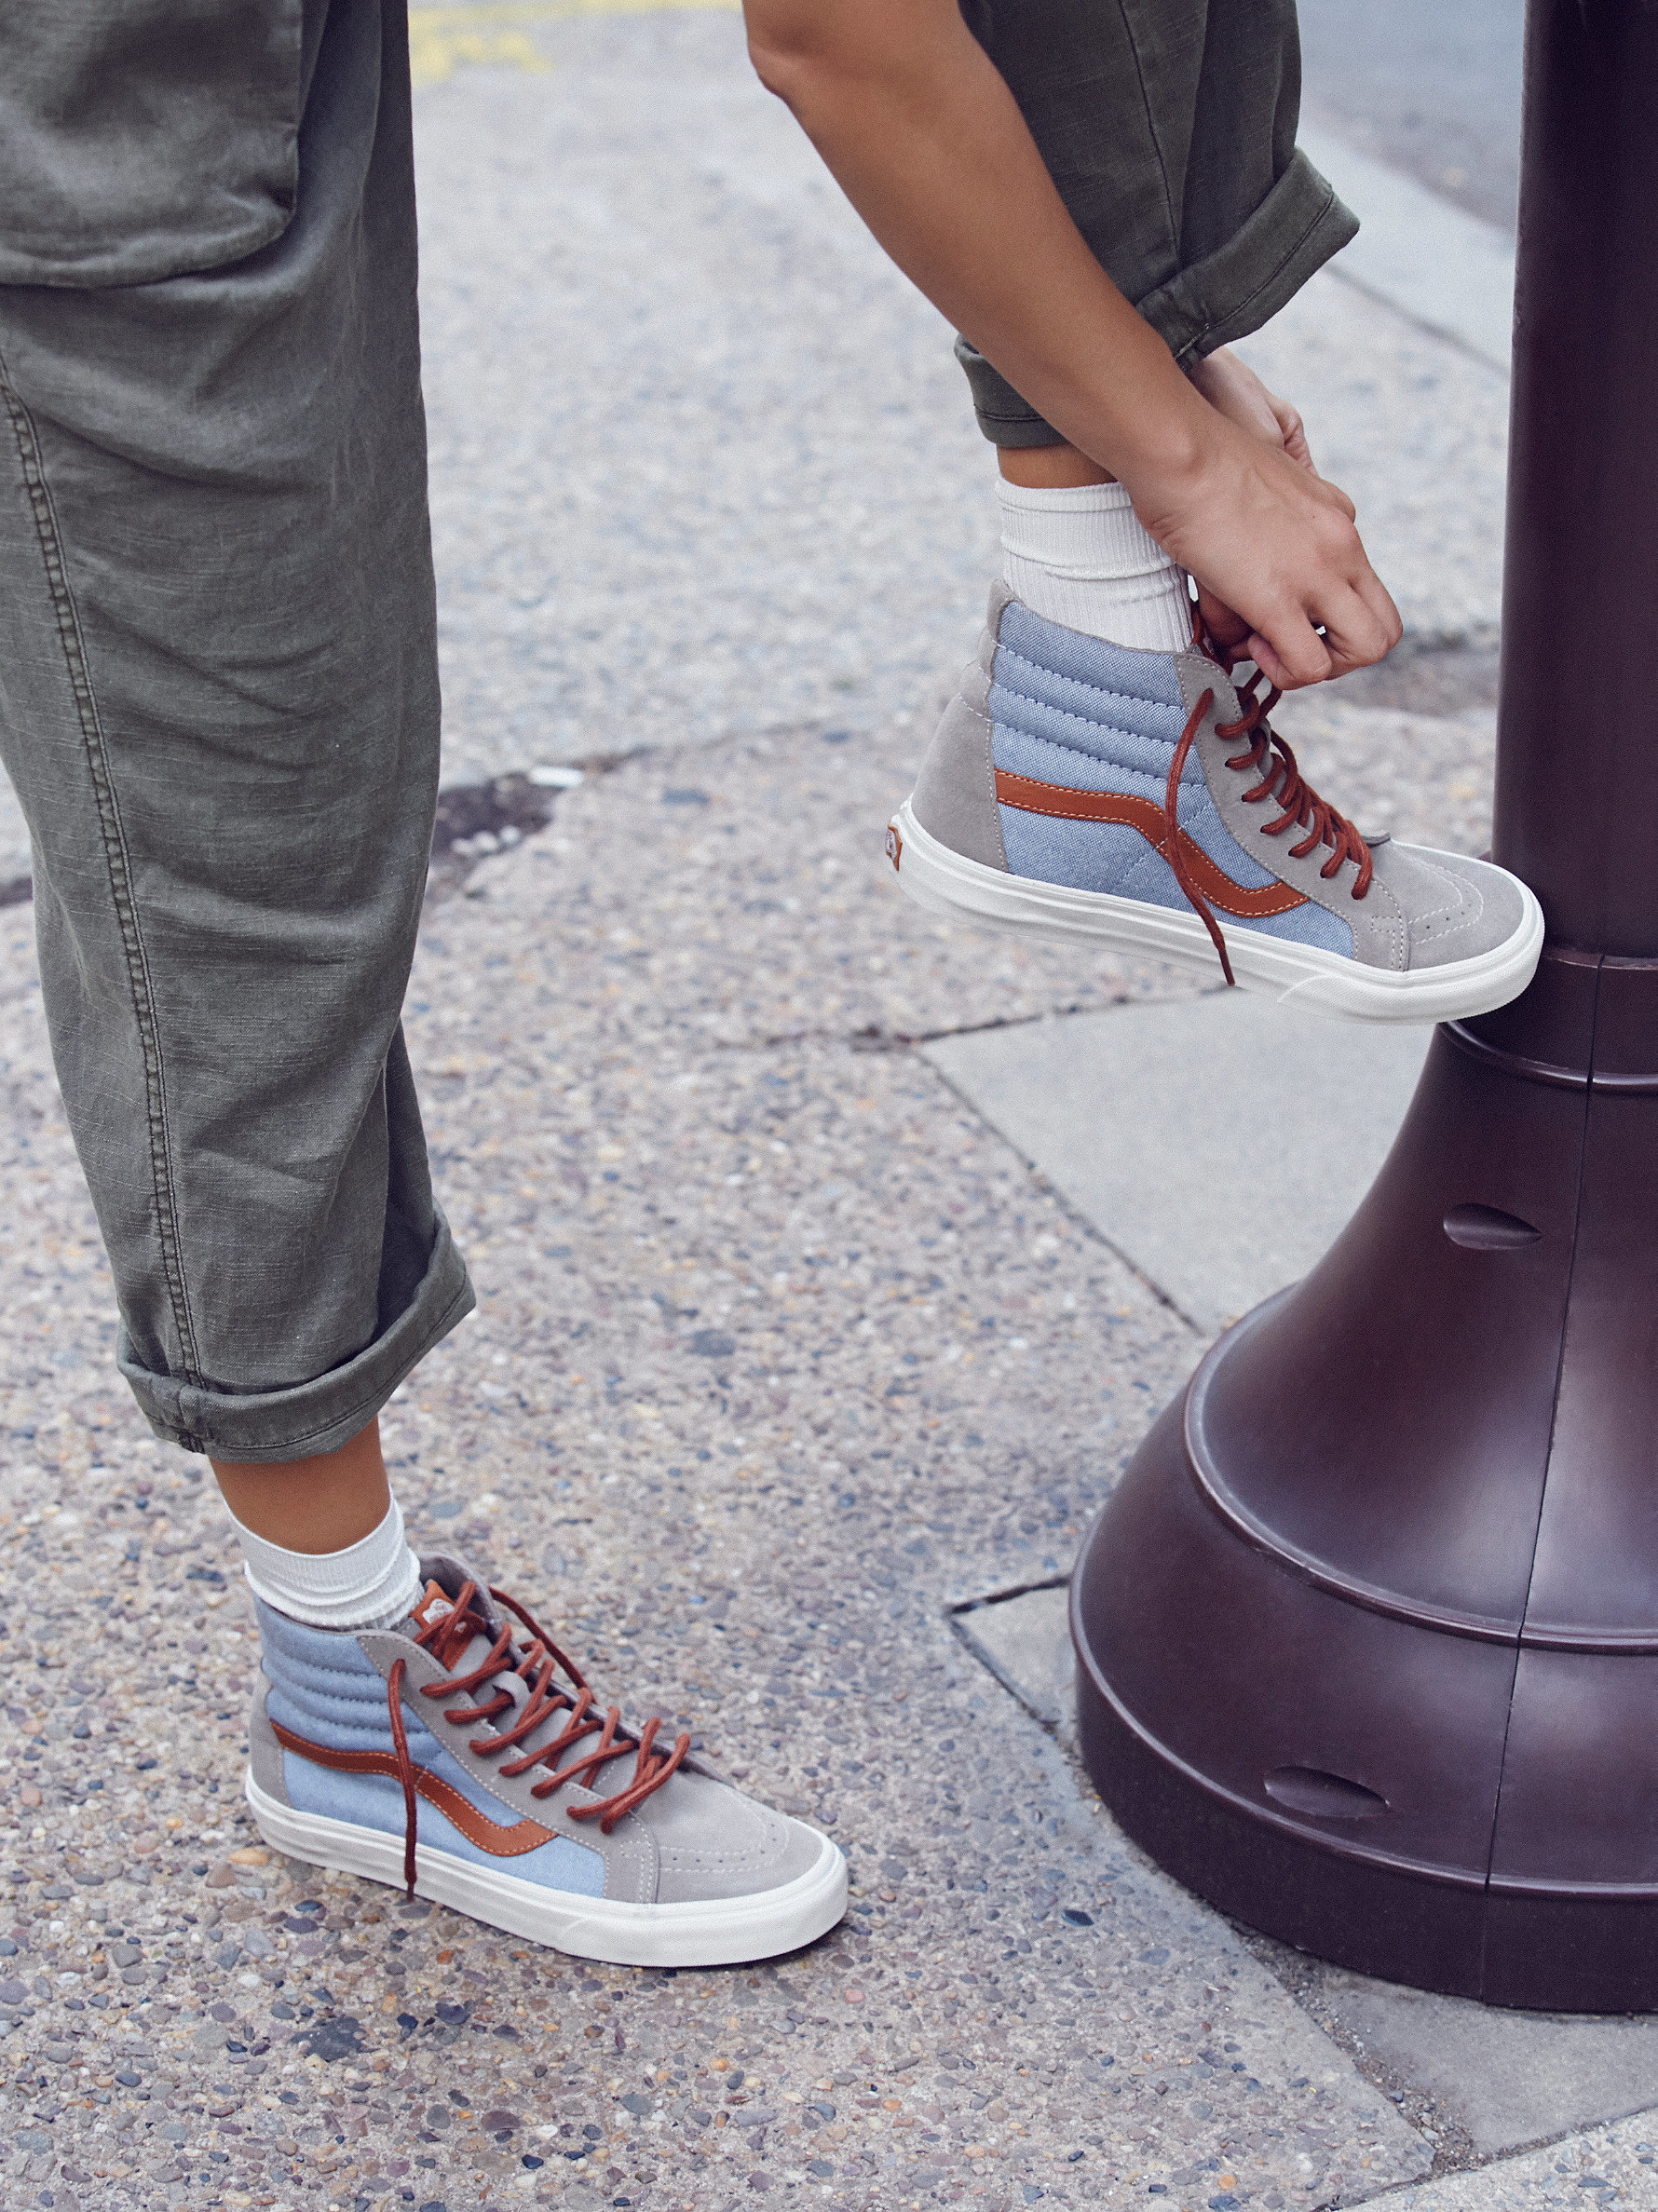 Lyst - Free People Sk8-hi Reissue Dx Sneaker in Blue 742d1adc2